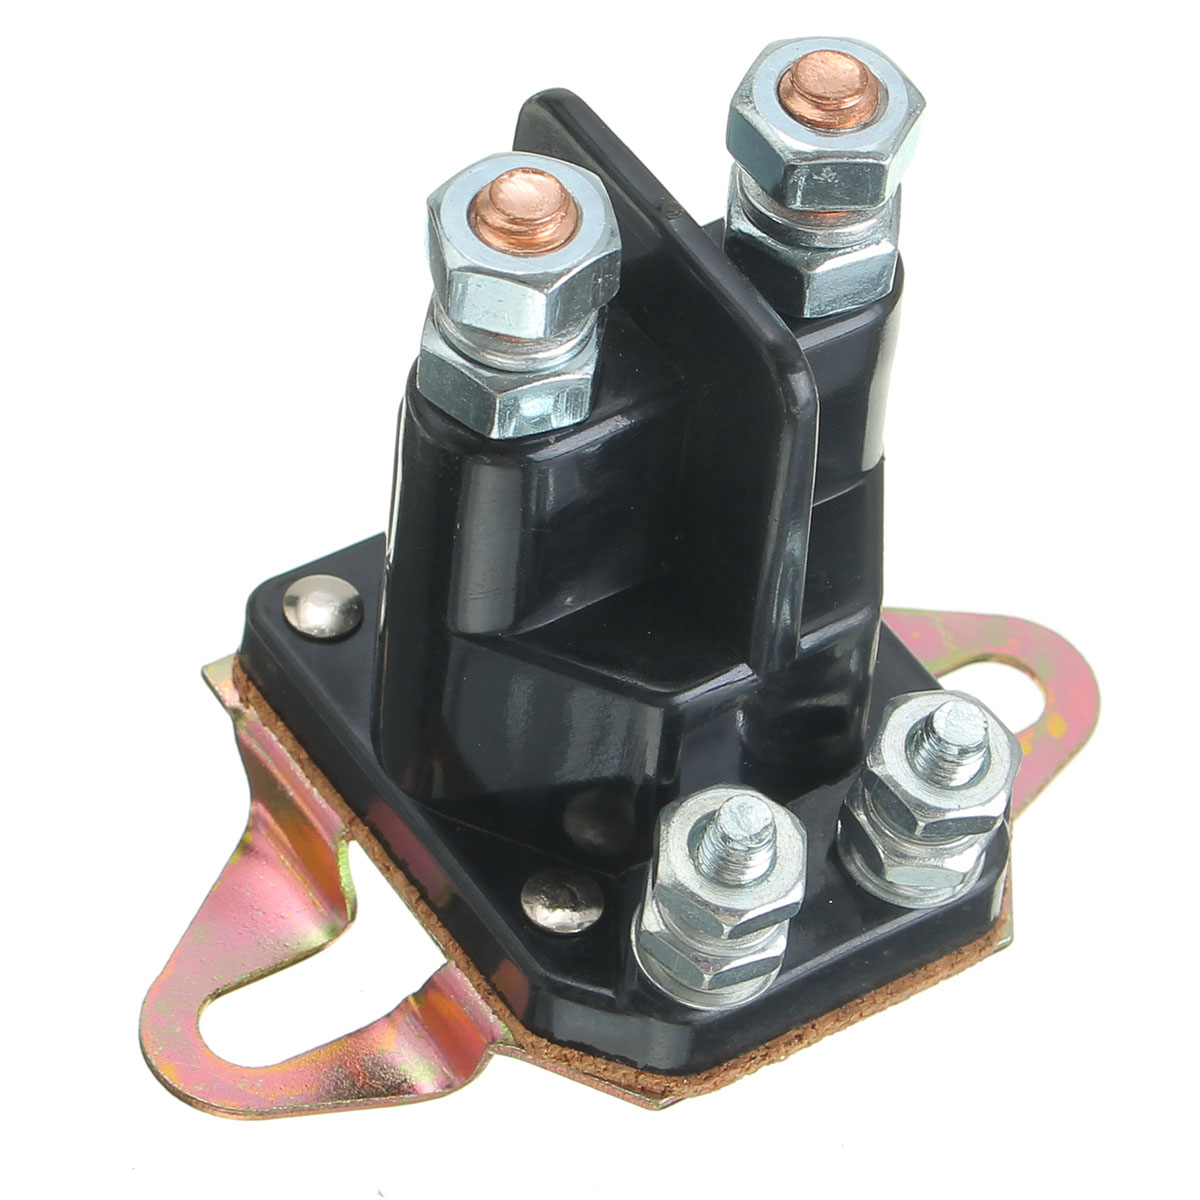 ᗖ New! Perfect quality engine solenoid relay switch and get